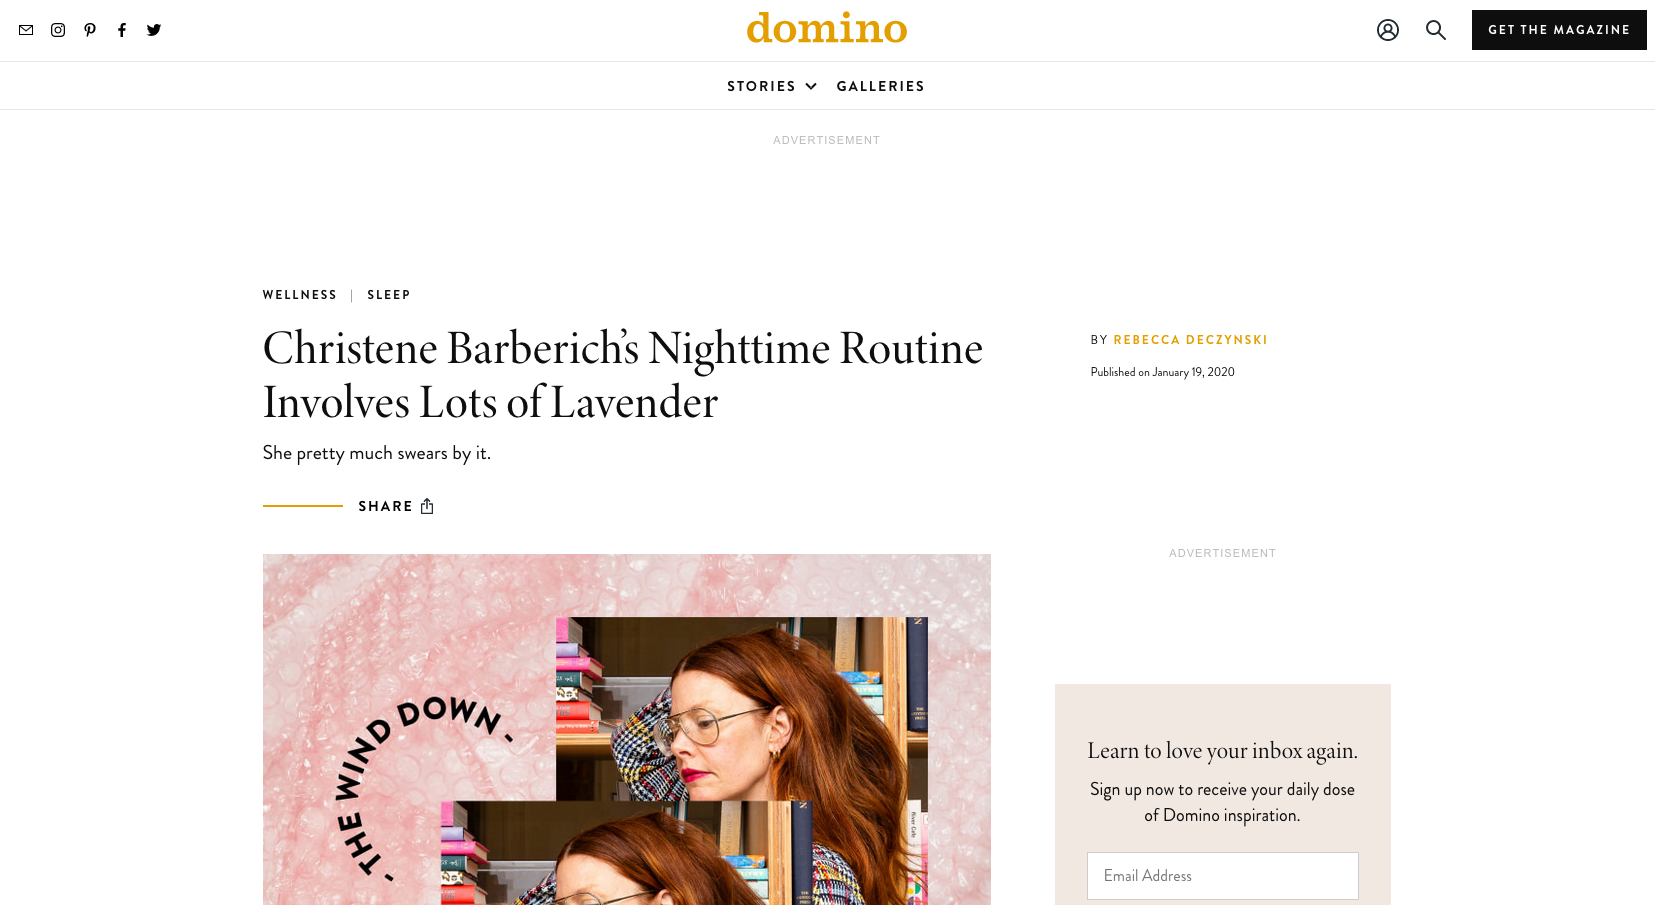 Christene Barberich's Nighttime Routine Involves Lots of Lavender